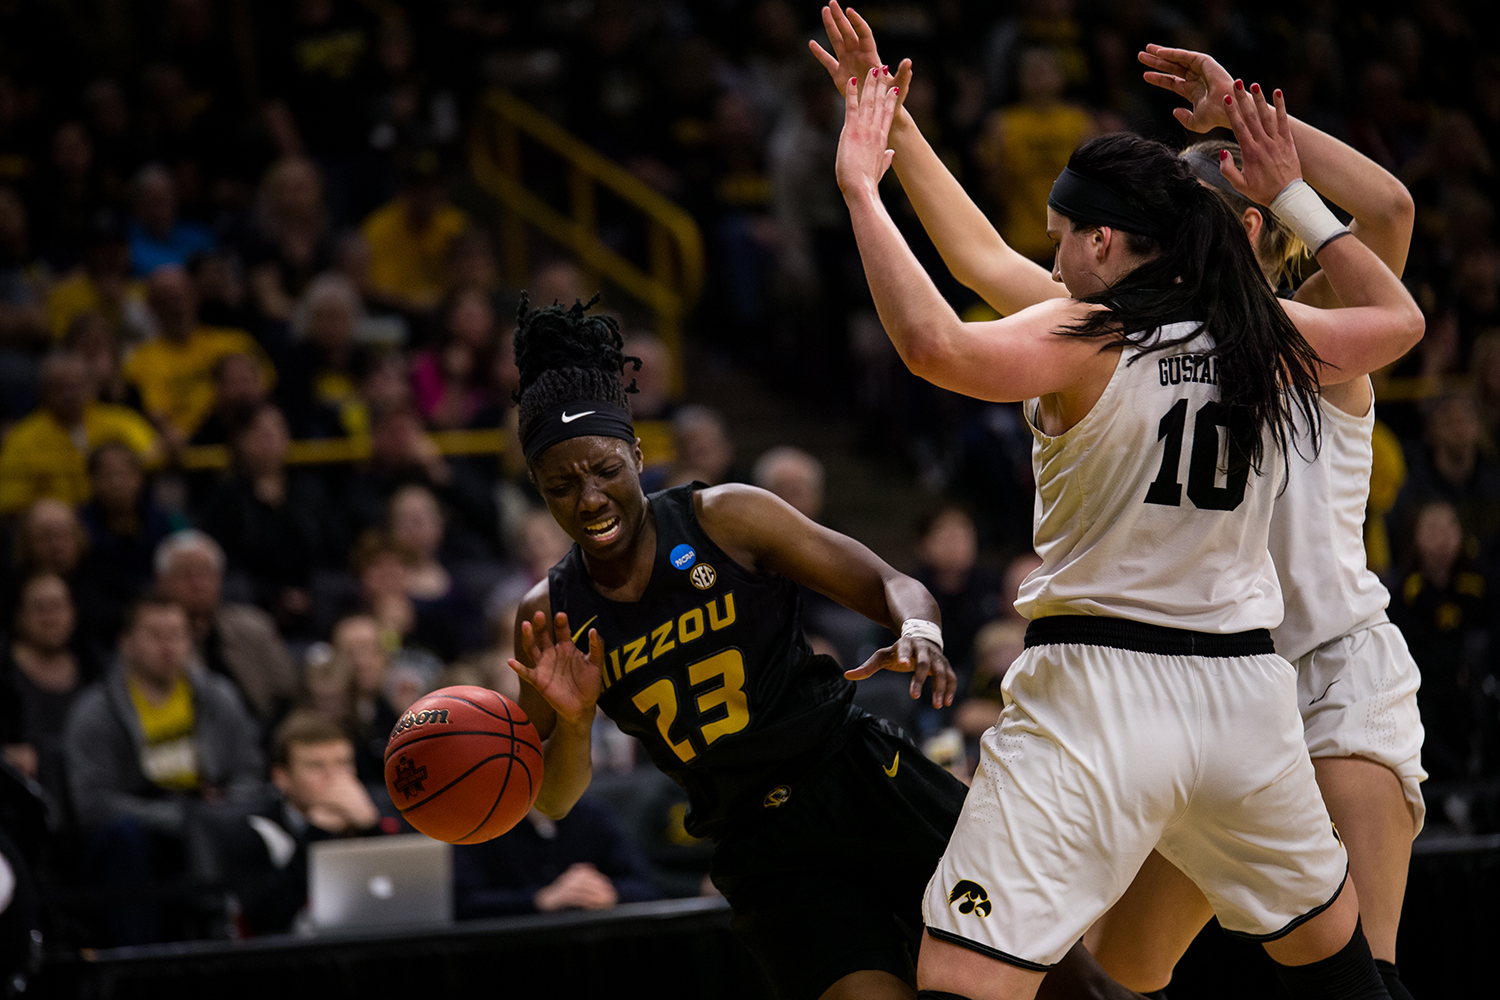 Iowa+center+Megan+Gustafson+%2810%29+and+Iowa+forward+Hannah+Stewart+%2821%29+blocks+a+shot+during+the+Iowa%2FMissouri+NCAA+Tournament+second+round+women%E2%80%99s+basketball+game+in+Carver-Hawkeye+Arena+in+Iowa+City%2C+Iowa+on+Sunday%2C+March+24%2C+2019.+The+Hawkeyes+defeated+the+Tigers+68-52.